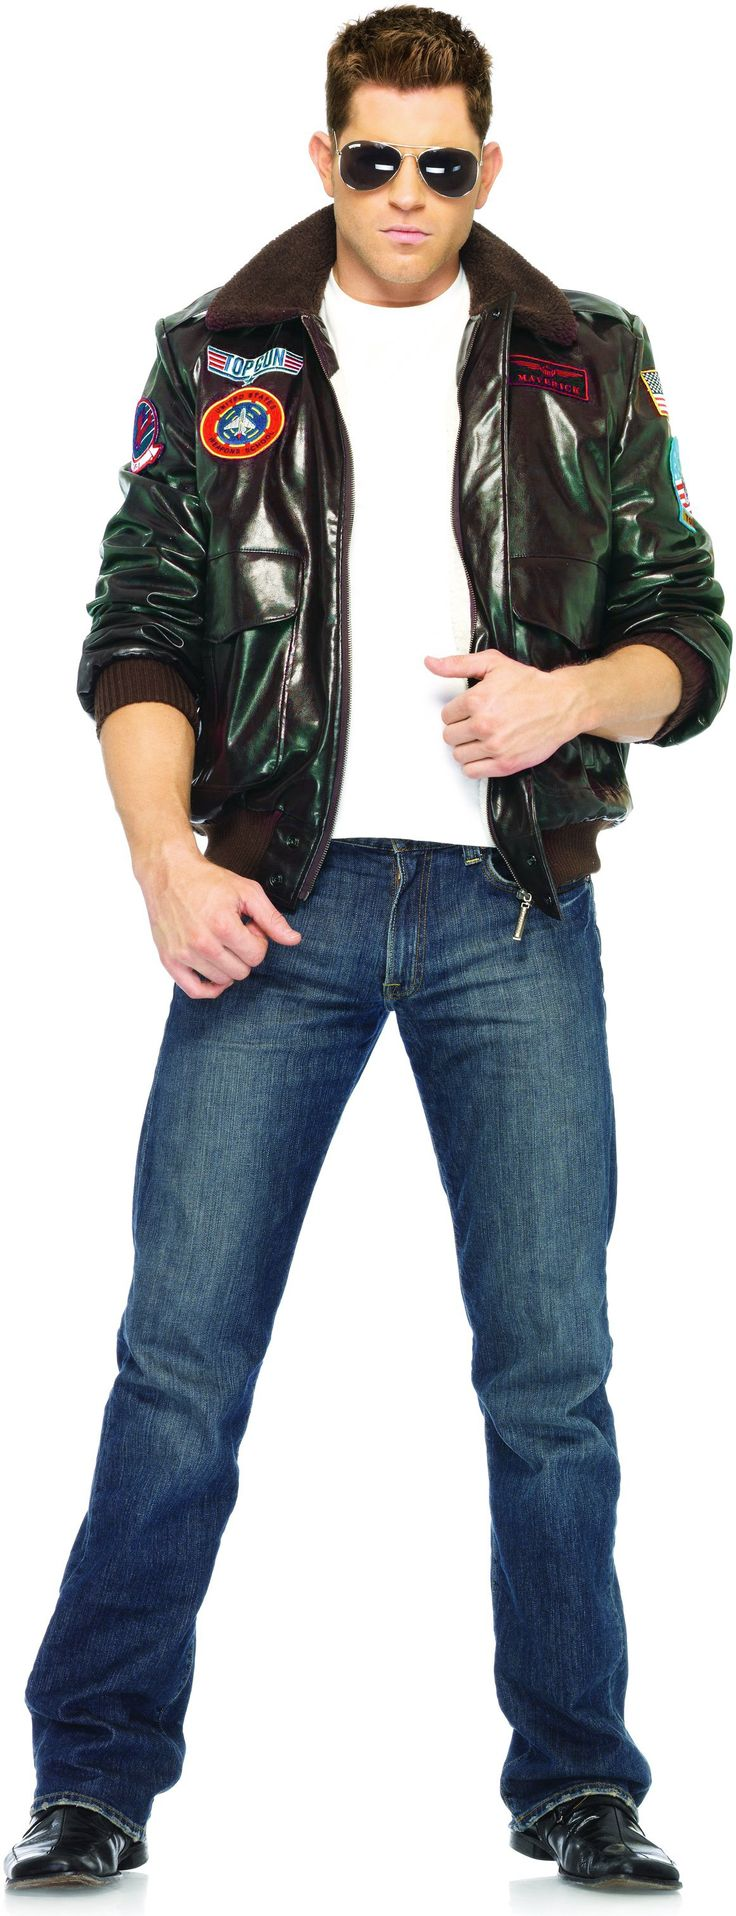 Top 75 Best Halloween Costumes For Men – Cool Manly Ideas Top 75 Best Halloween Costumes For Men – Cool Manly Ideas new pictures